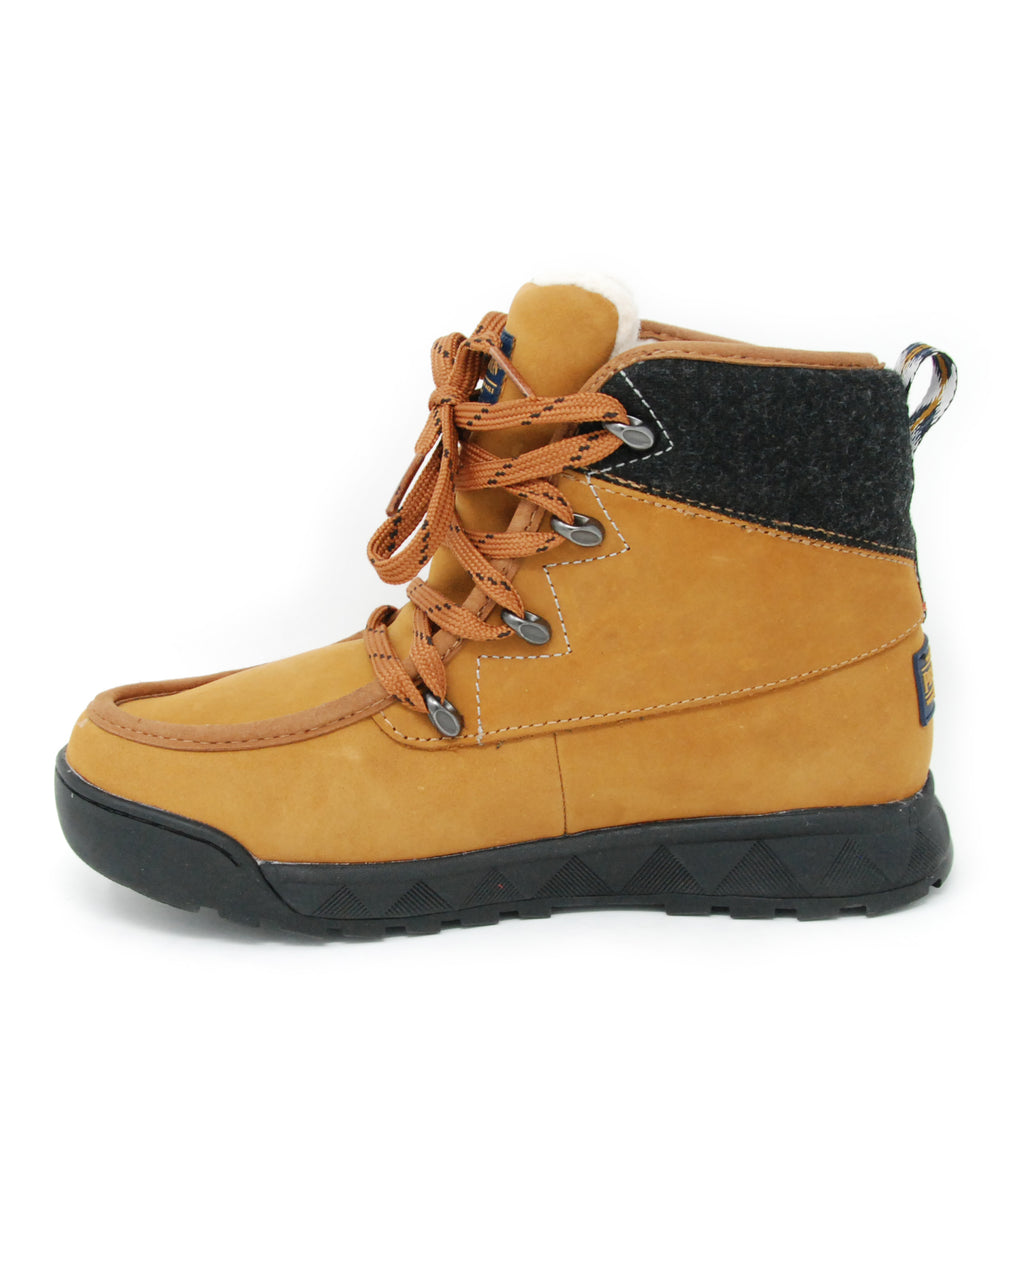 Pendleton Torngat Cathay Spice Trail Boot